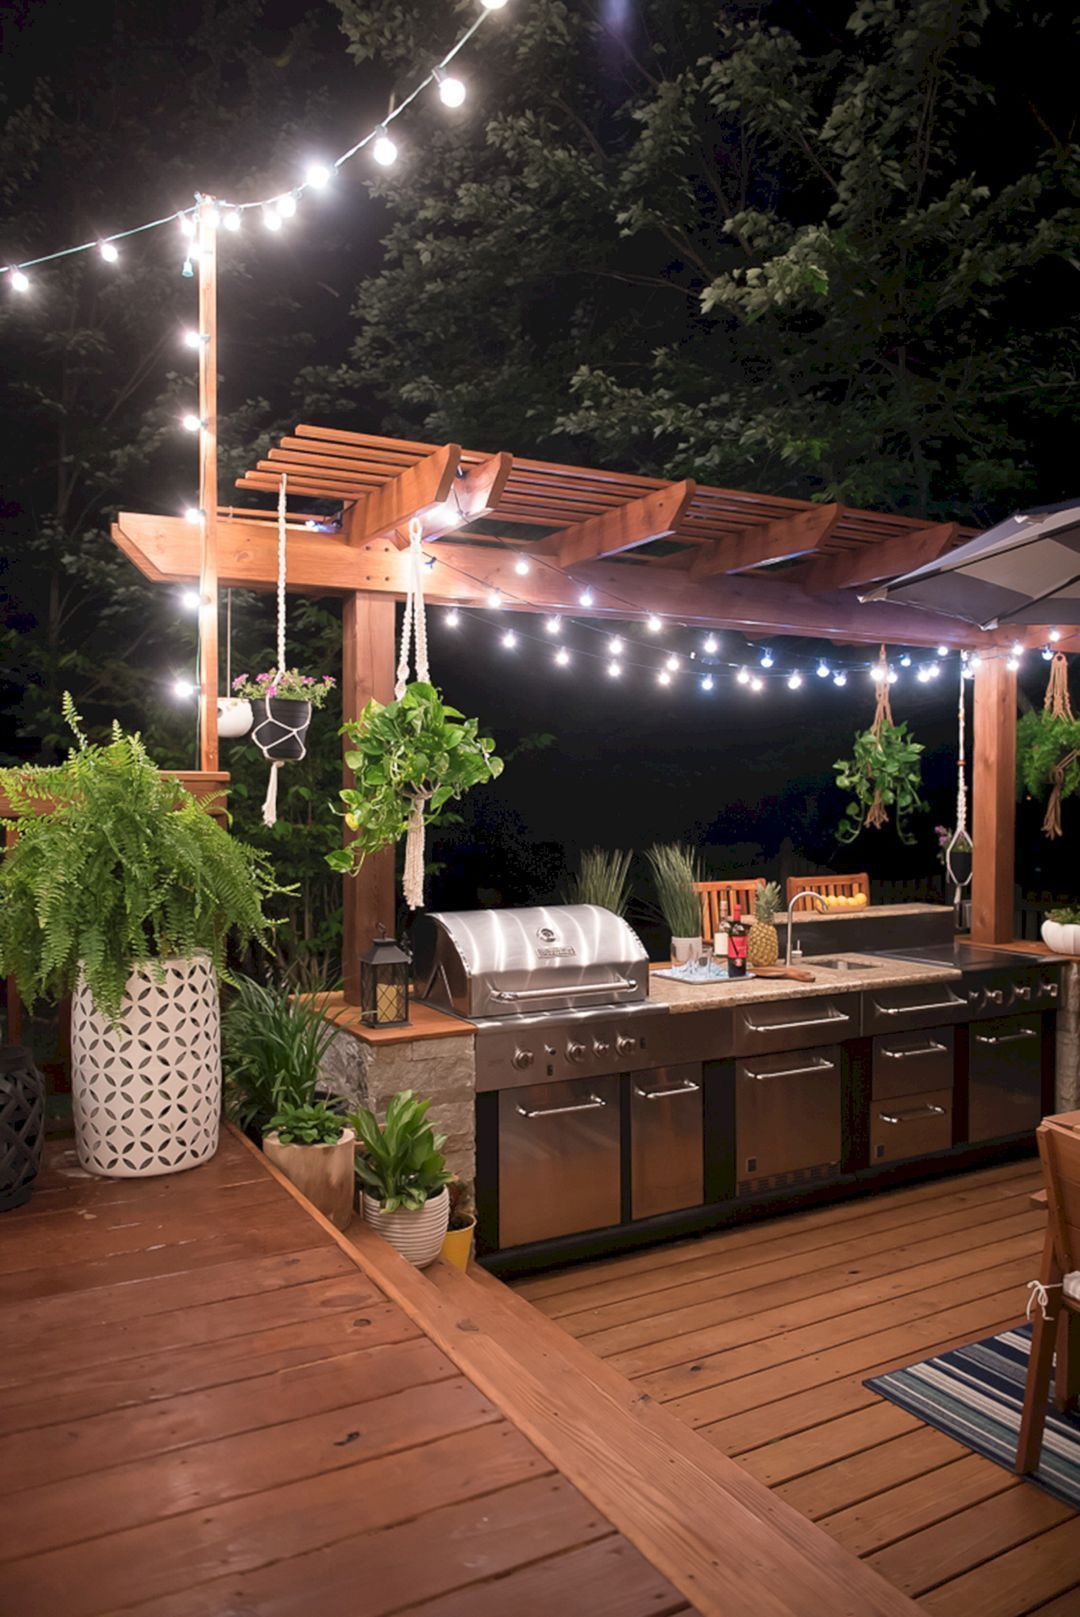 Have Many Trouble In Indoor Kitchen Install The Outdoor One Outdoor Kitchen Design Outdoor Cooking Area Outdoor Decor